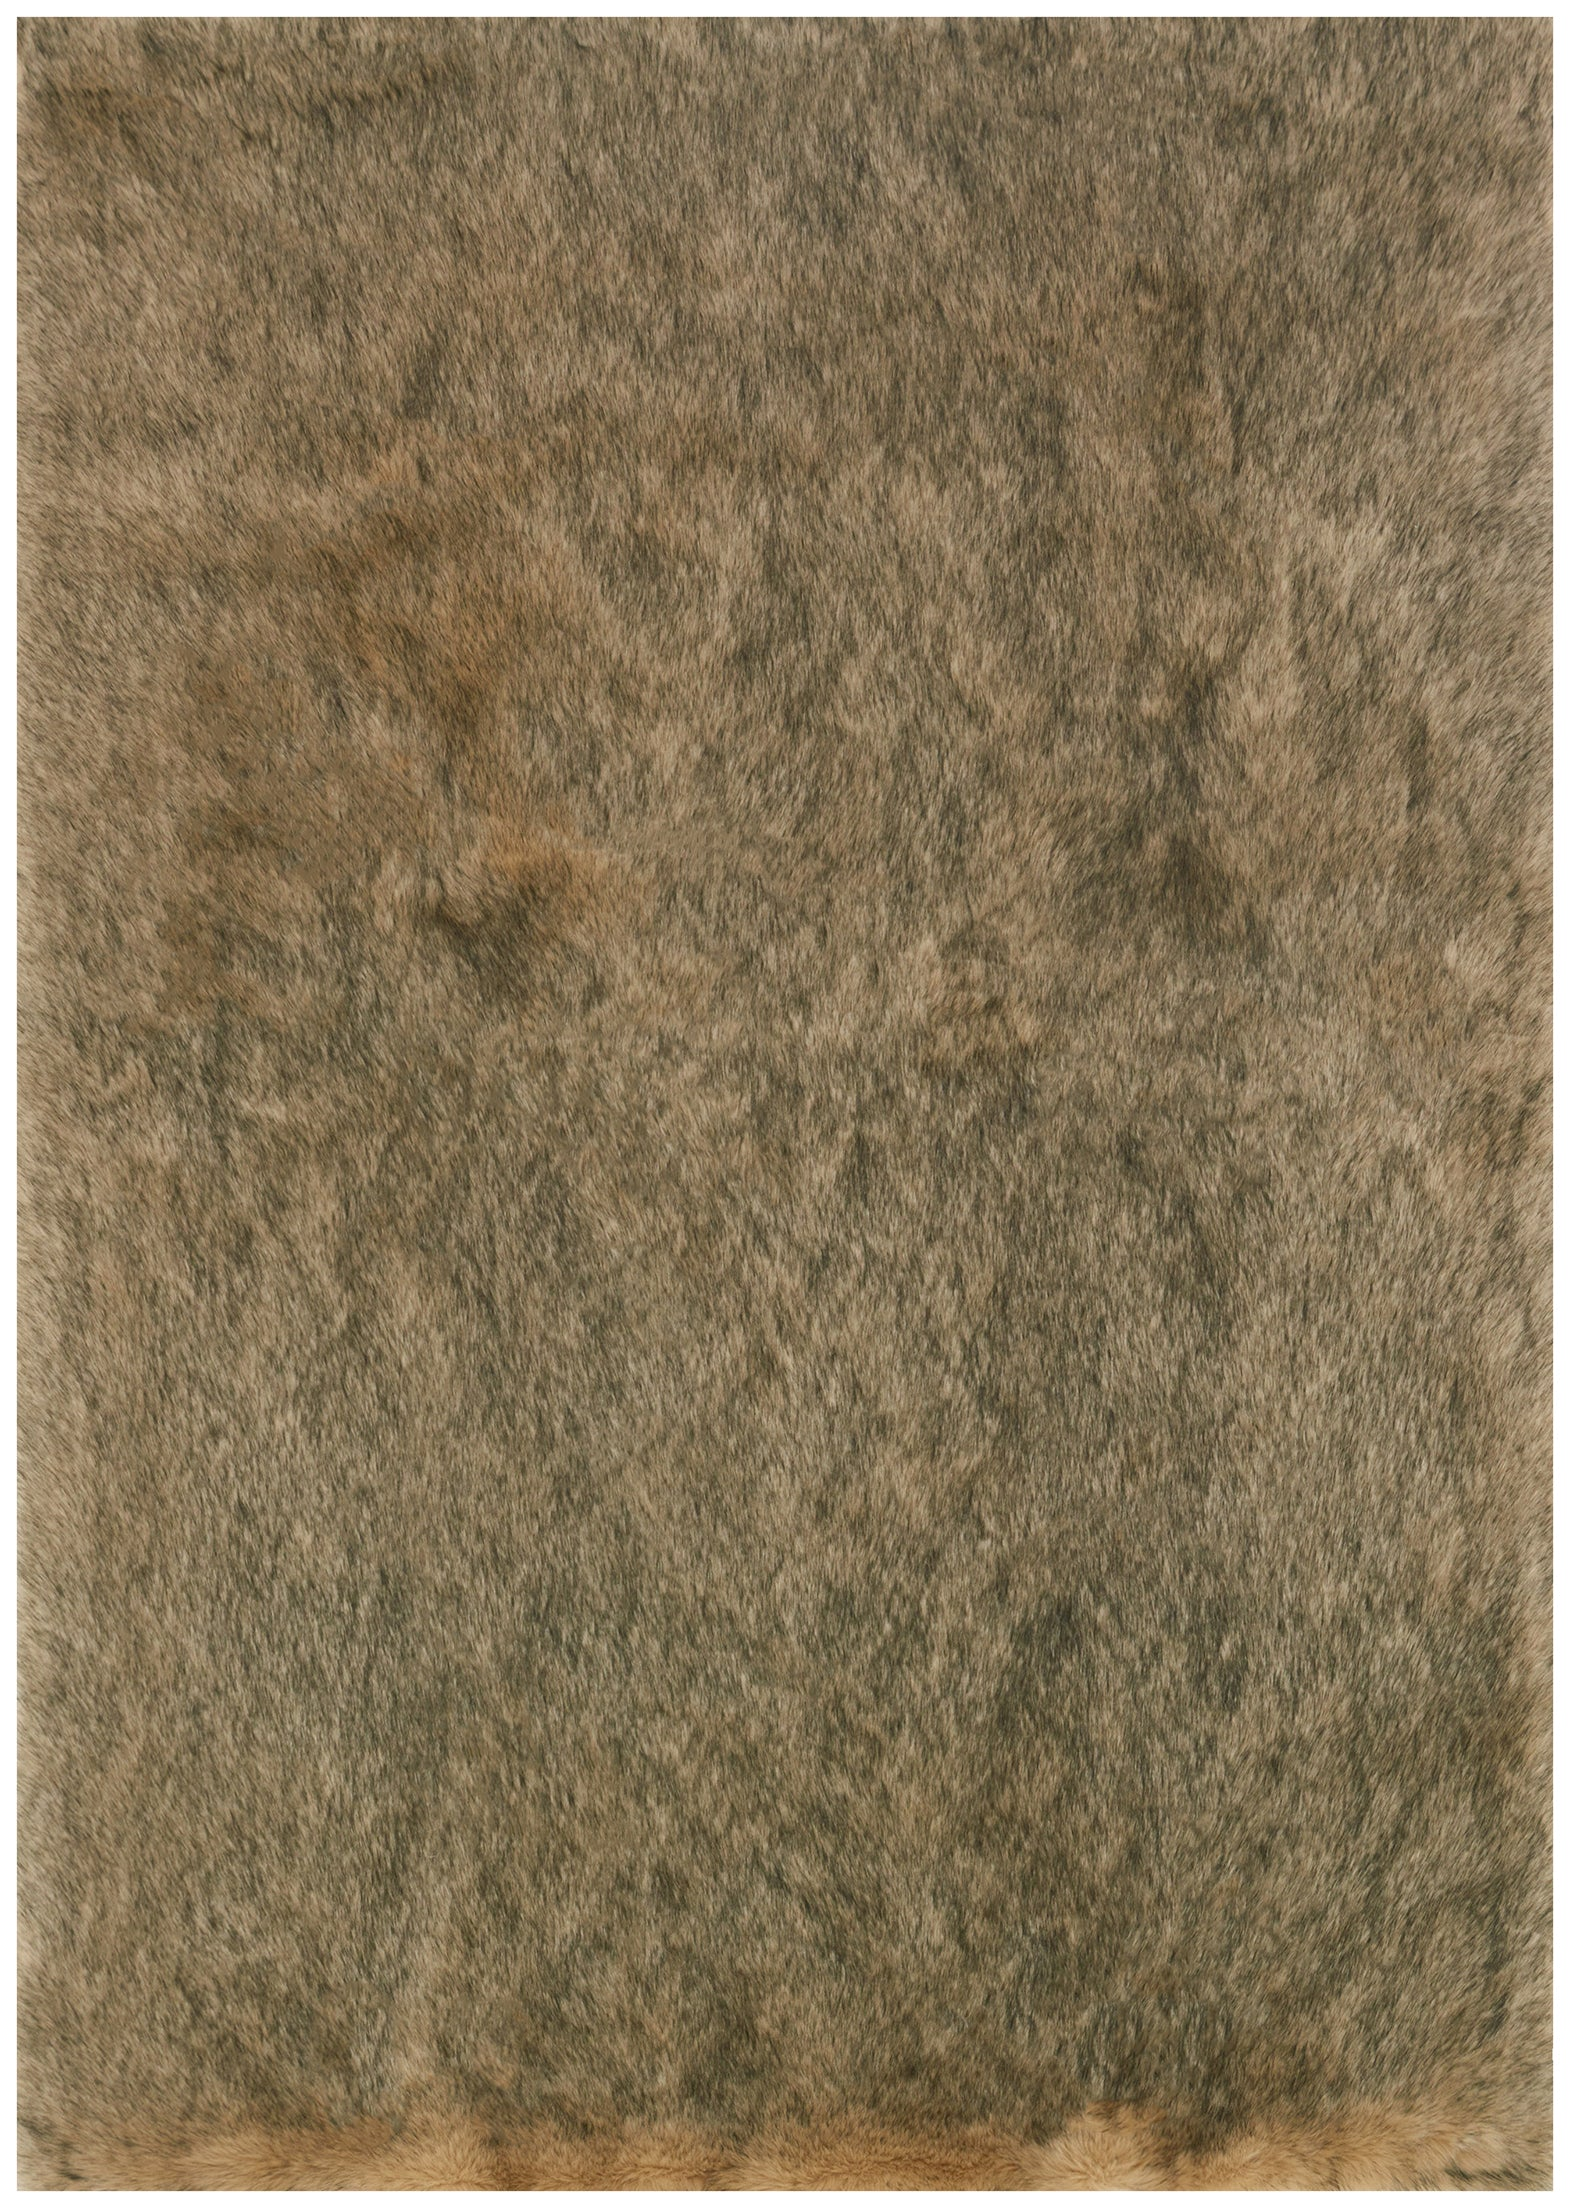 Modern Beige Tan and Black Faux Fur Rug